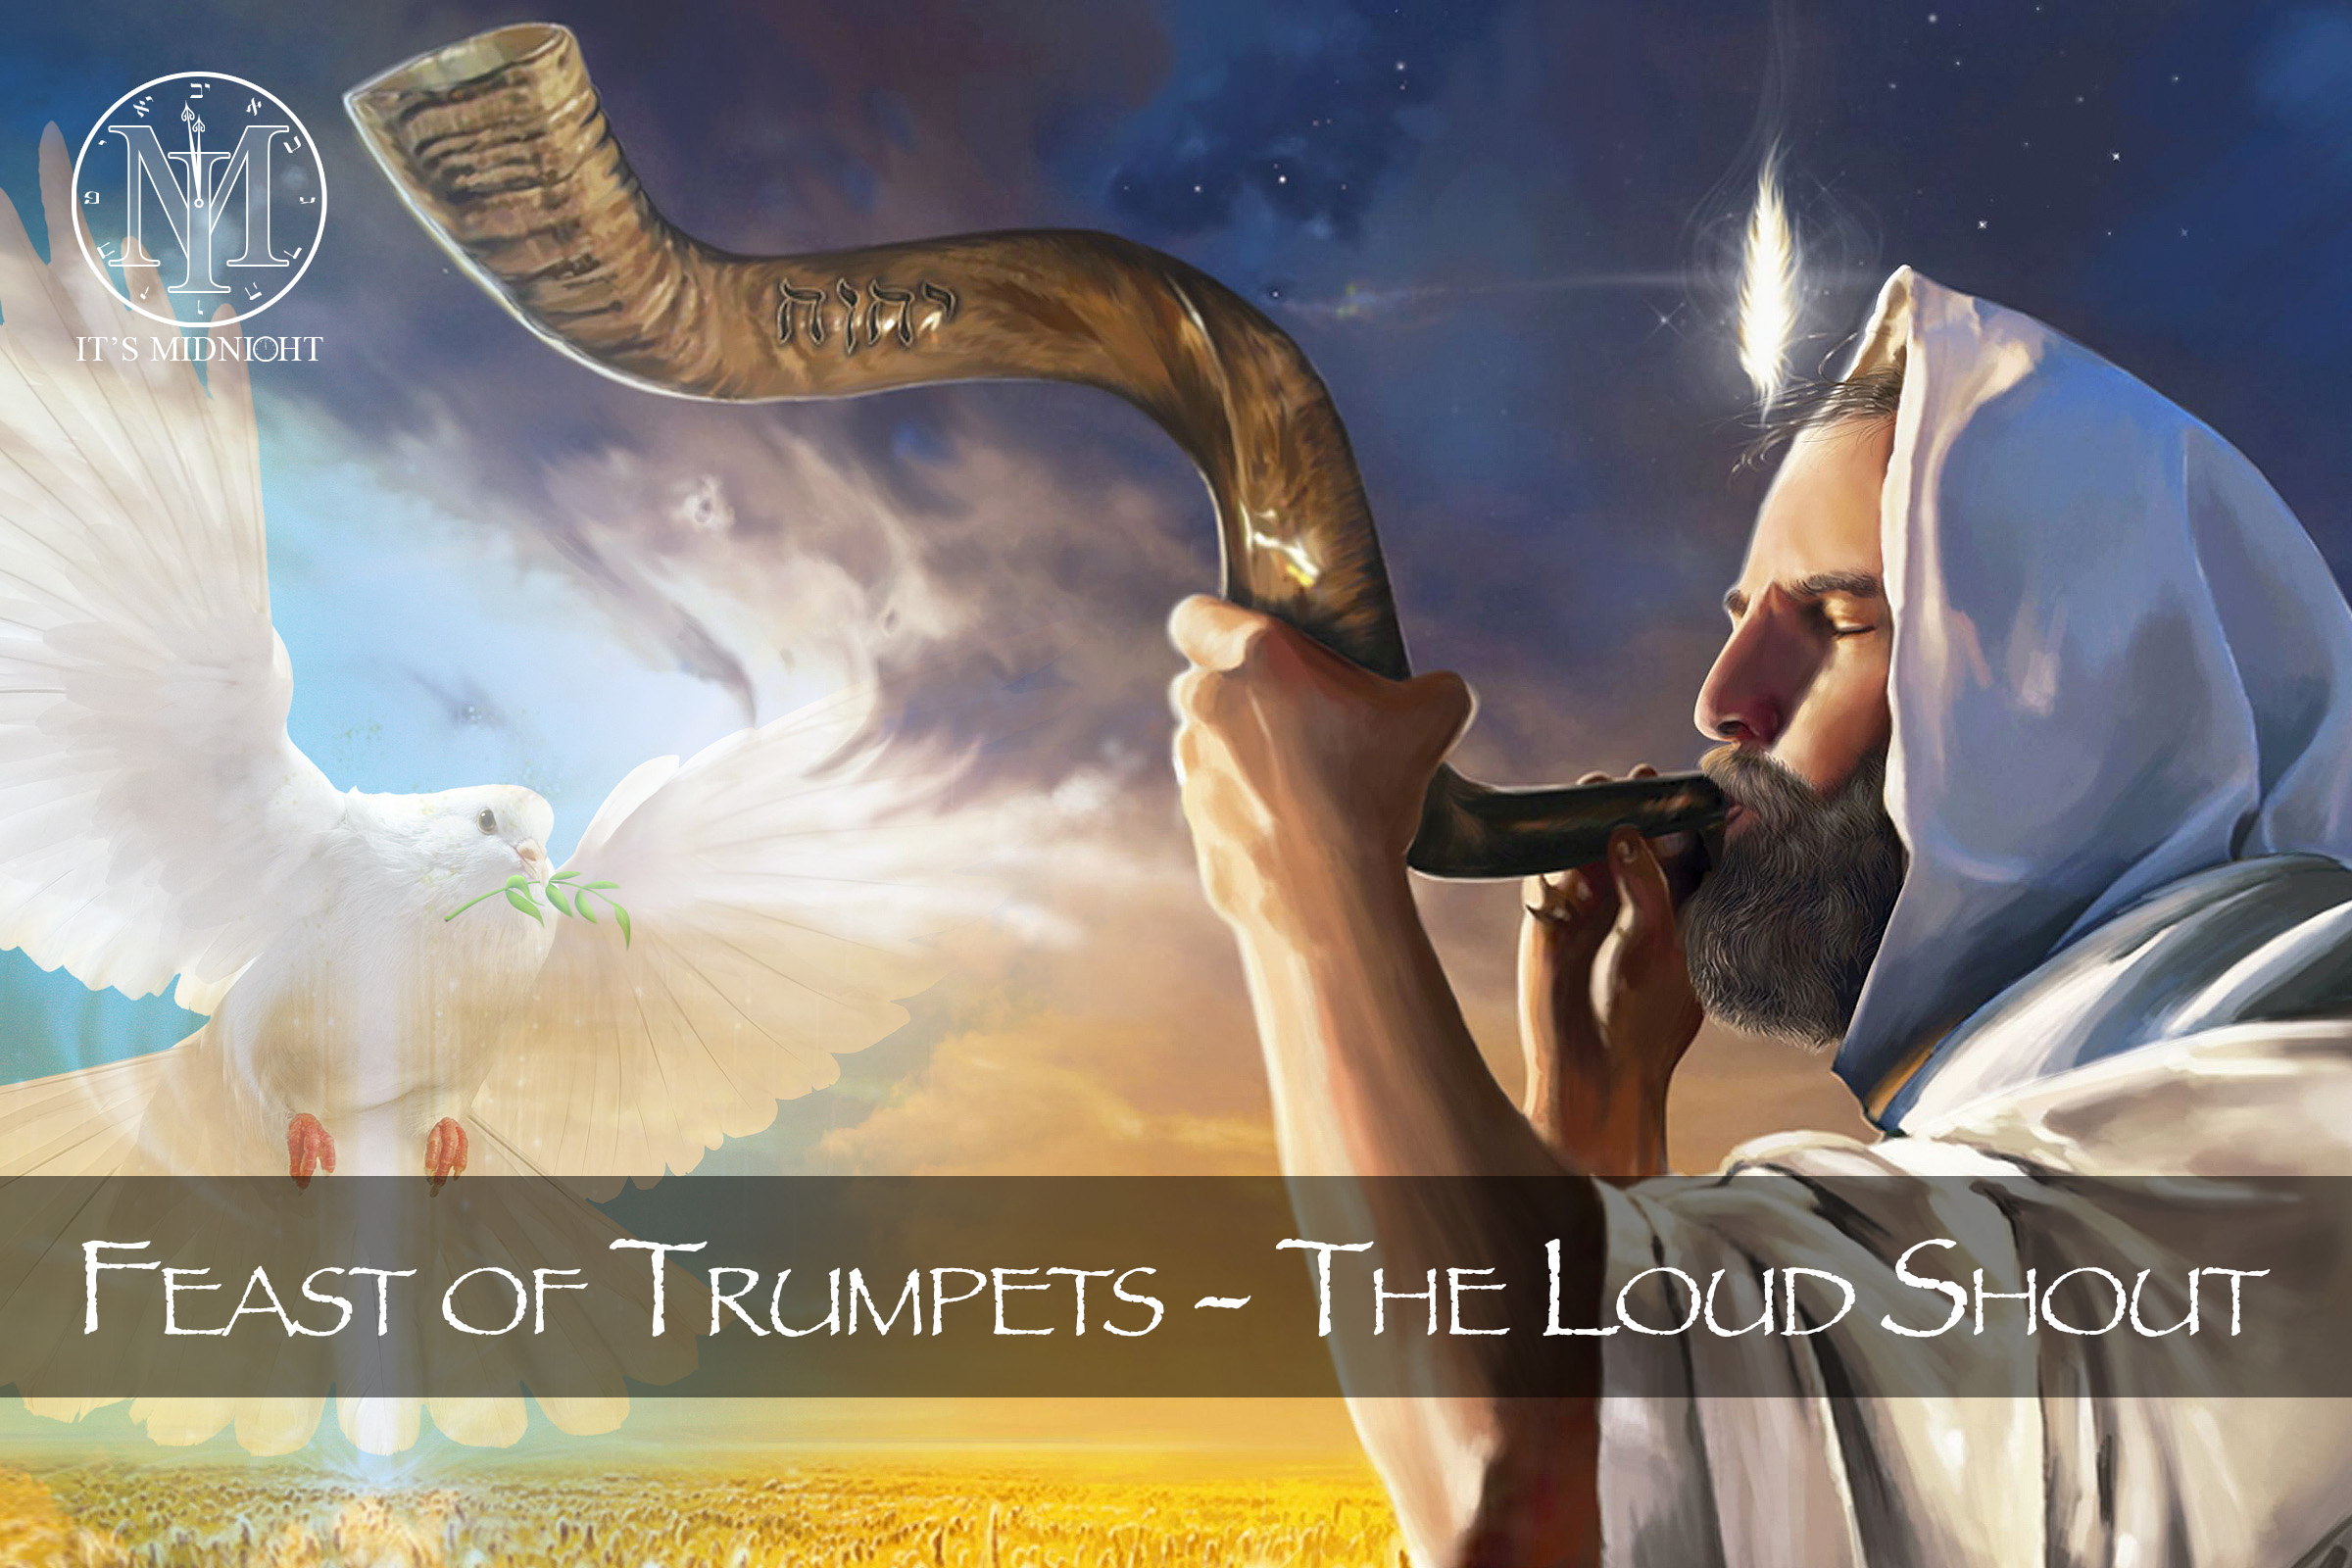 142 The Feast of Trumpets The Feast of the Loud Shout.jpg